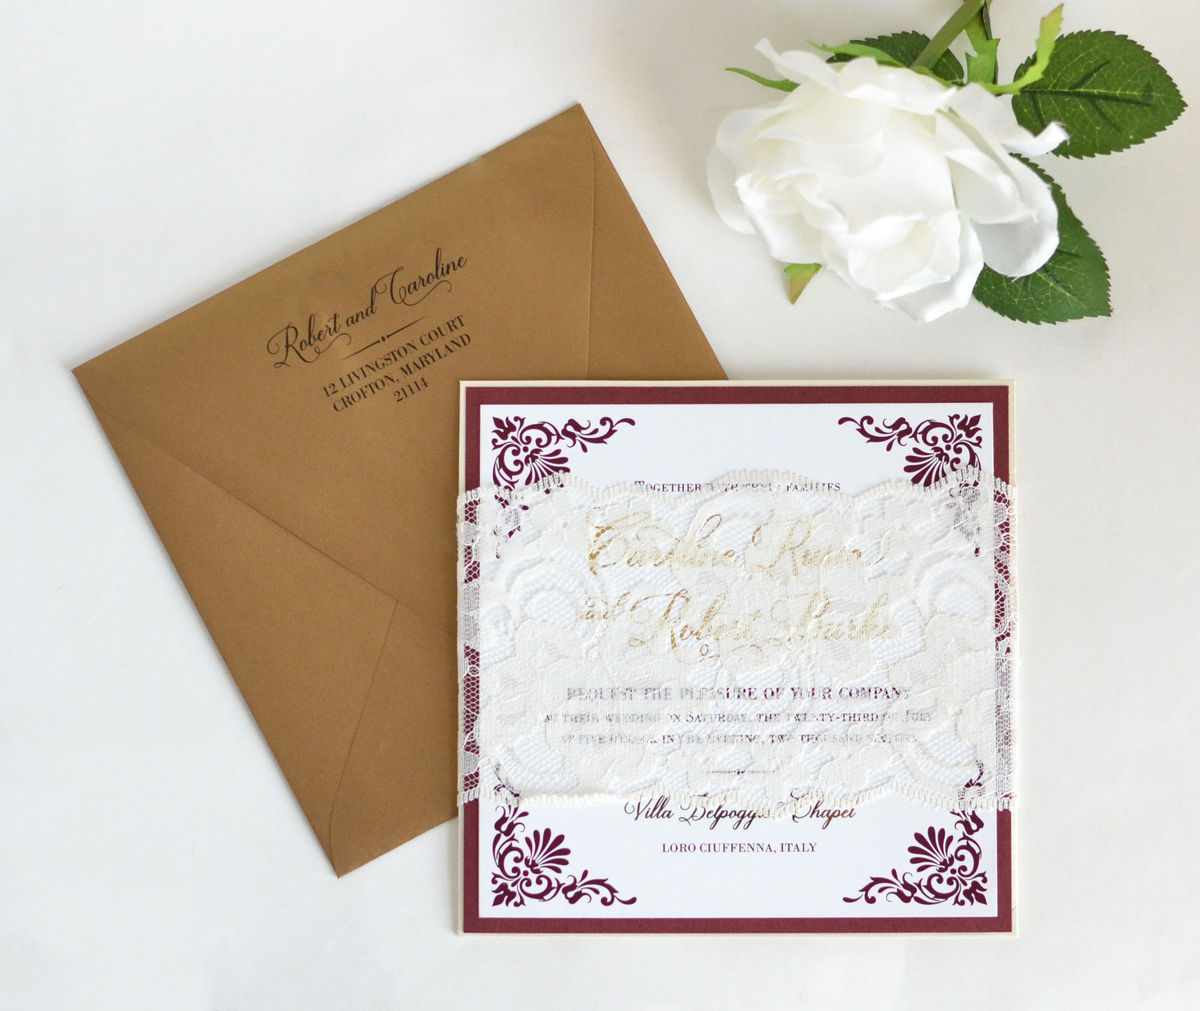 Pink Orchid Invitations - Invitations - Germantown, MD - WeddingWire